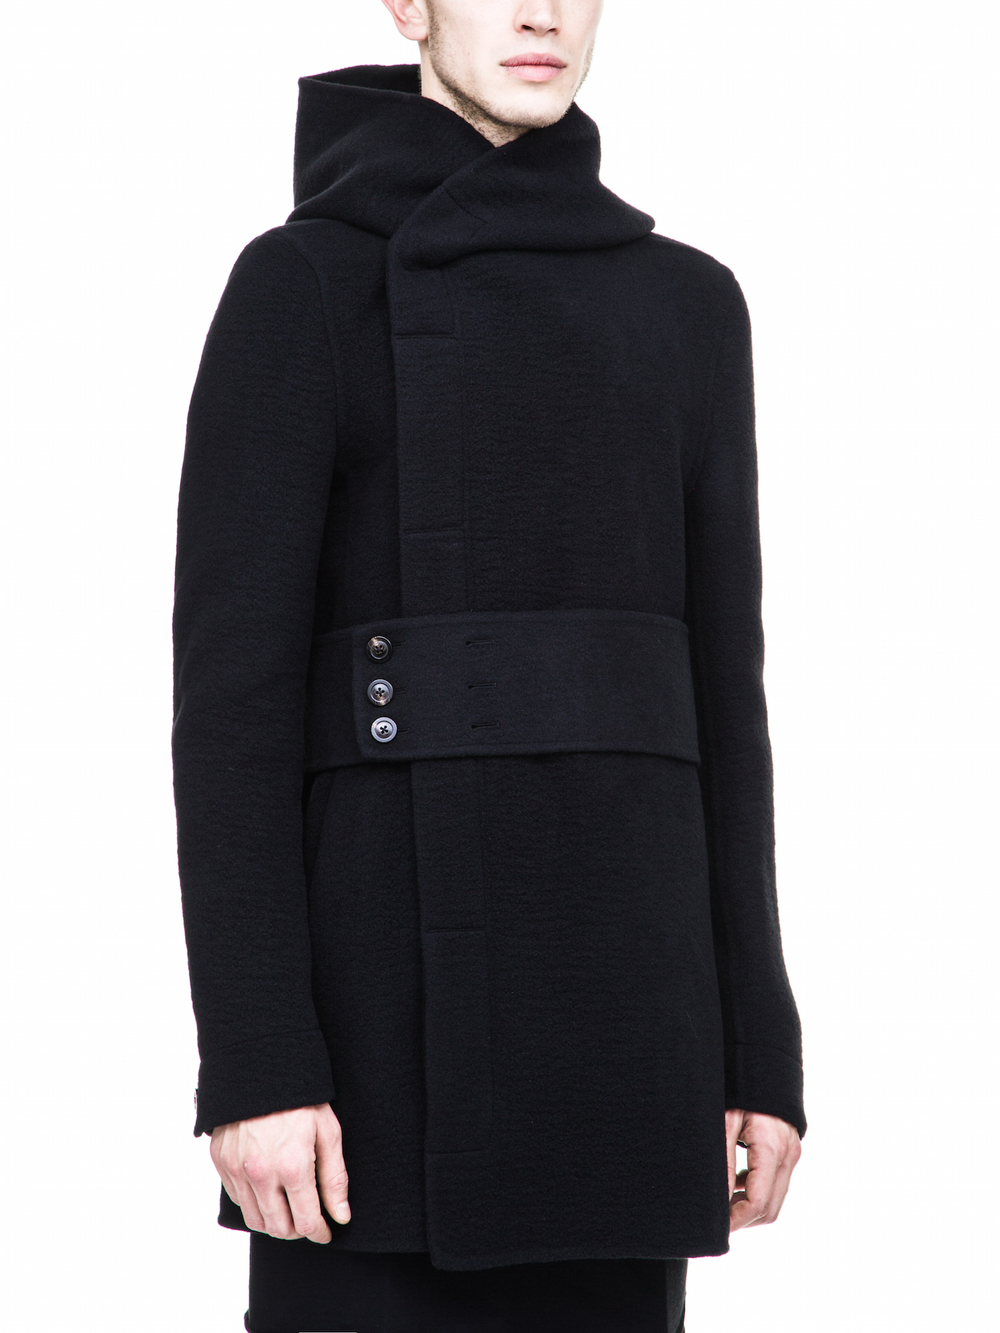 RICK OWENS FALL COAT IN BLACK CASHMERE FOR MENS